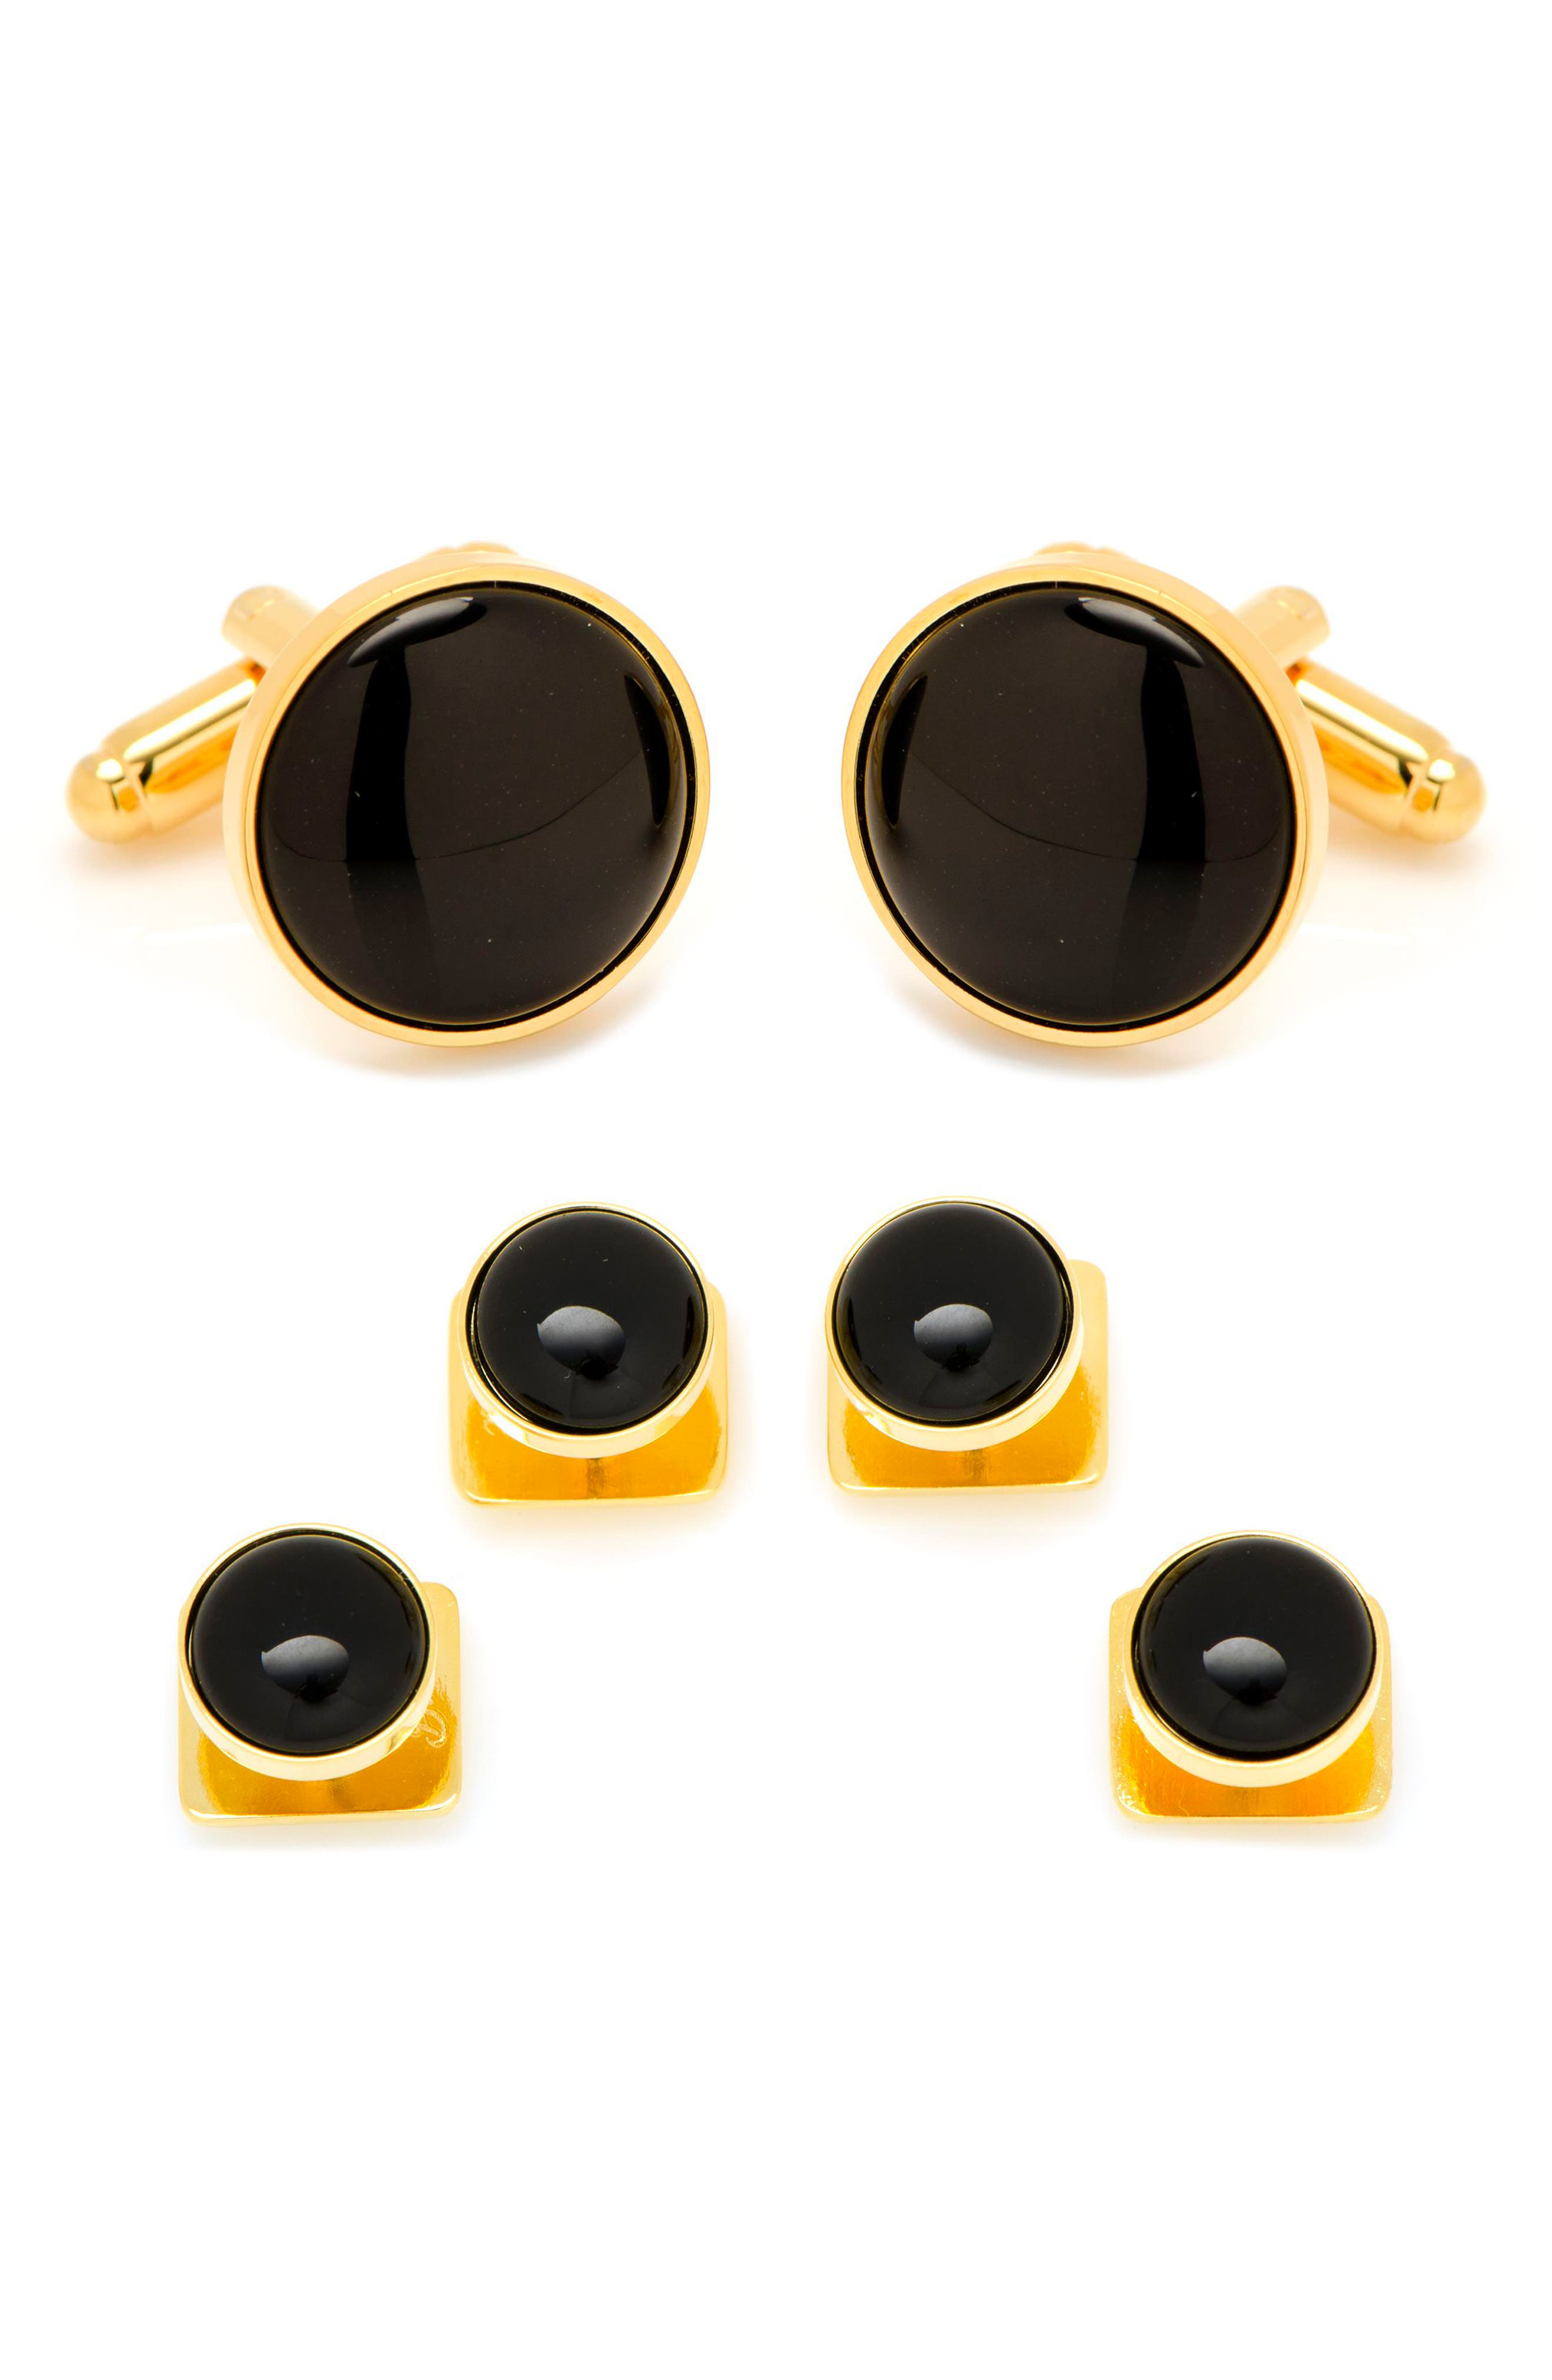 1920s Mens Evening Wear Step By Step Mens Cufflinks Inc. Onyx Cuff Link  Stud Set $95.00 AT vintagedancer.com